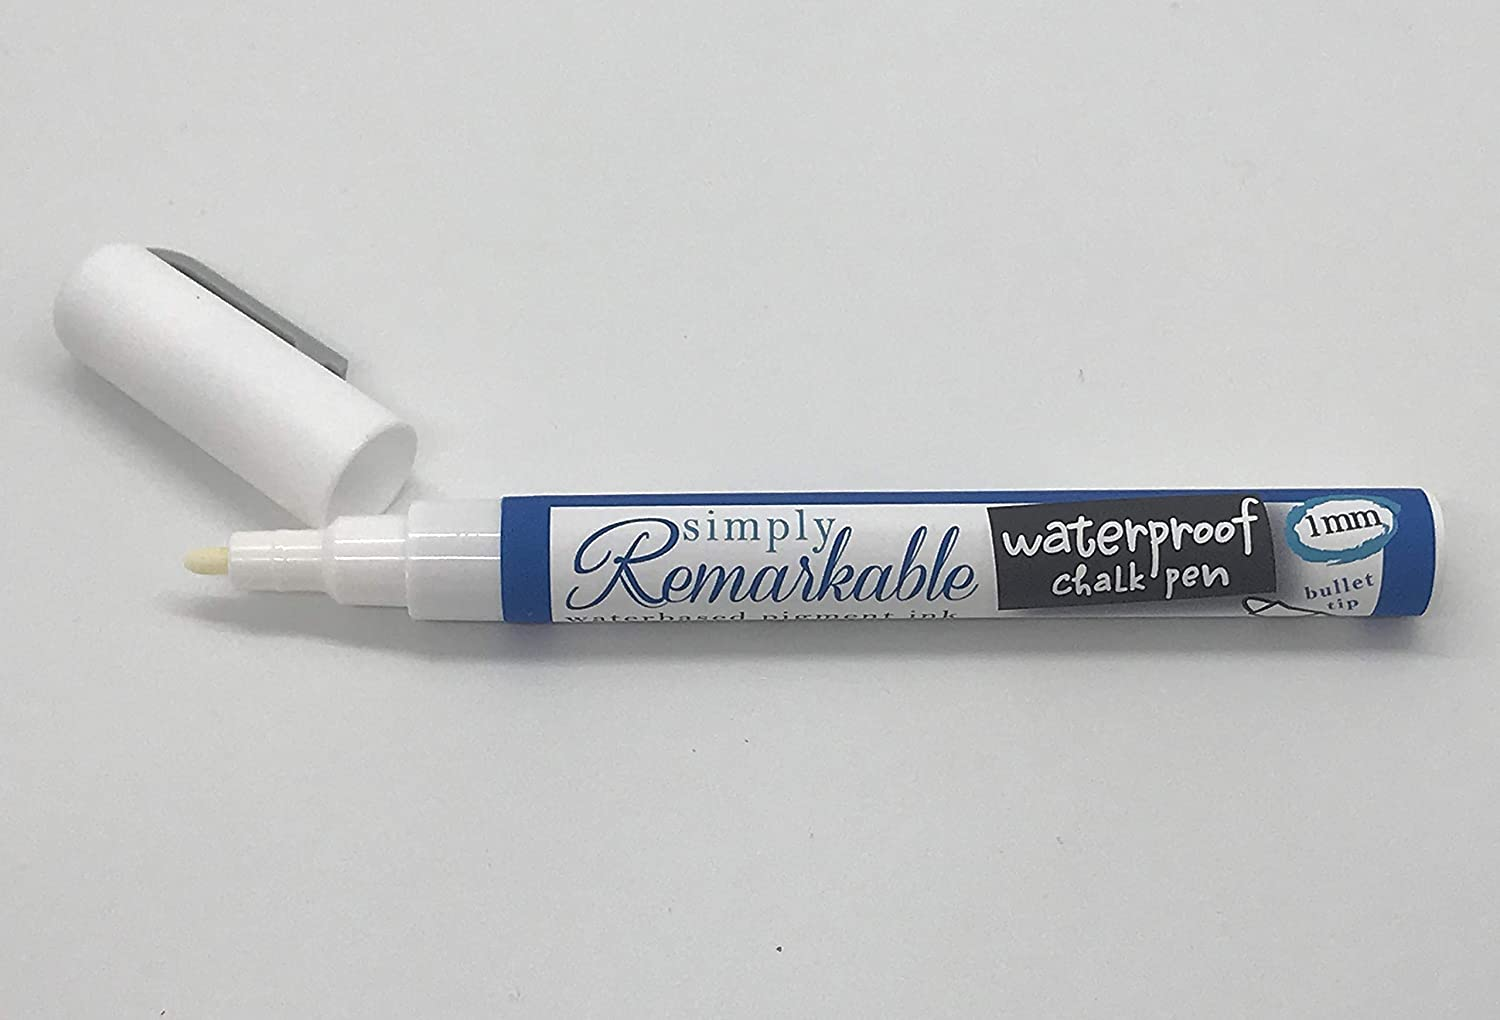 Simply Remarkable Waterproof Chalk Pen to Write or Draw Custom Labels, Tags and More, White Liquid Chalk Marker, 1mm Fine Tip